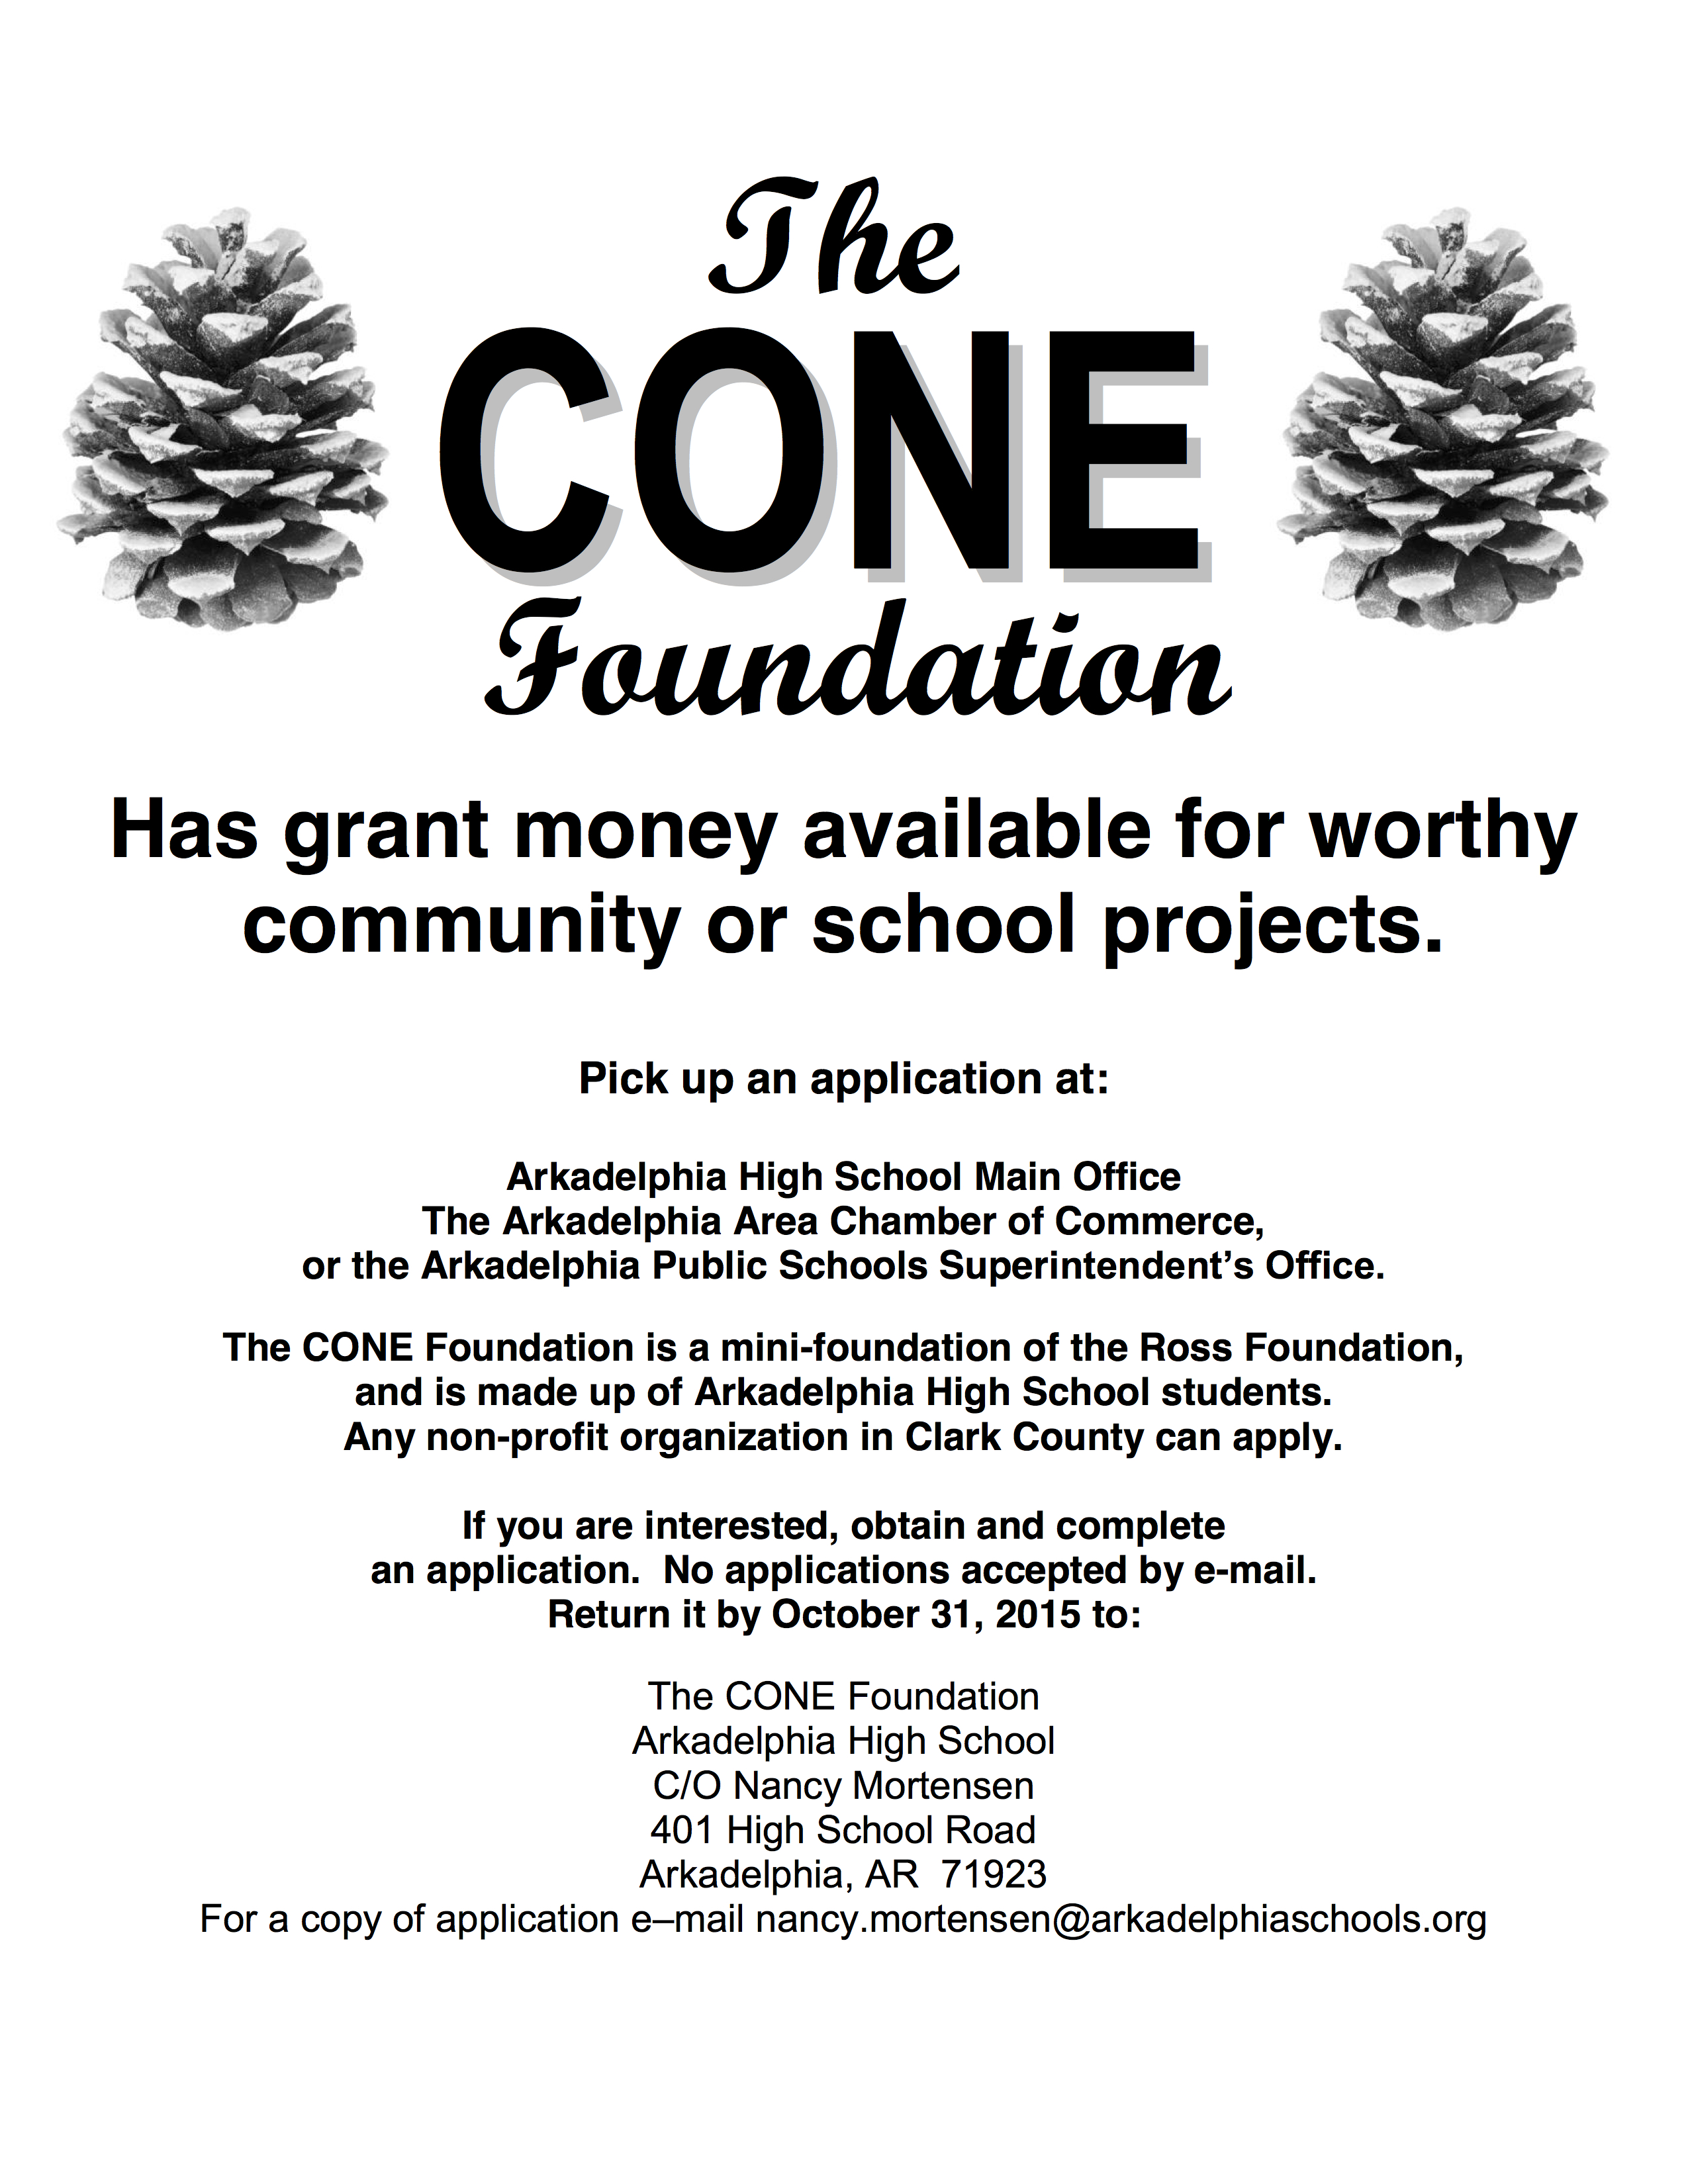 CONE Foundation Applications